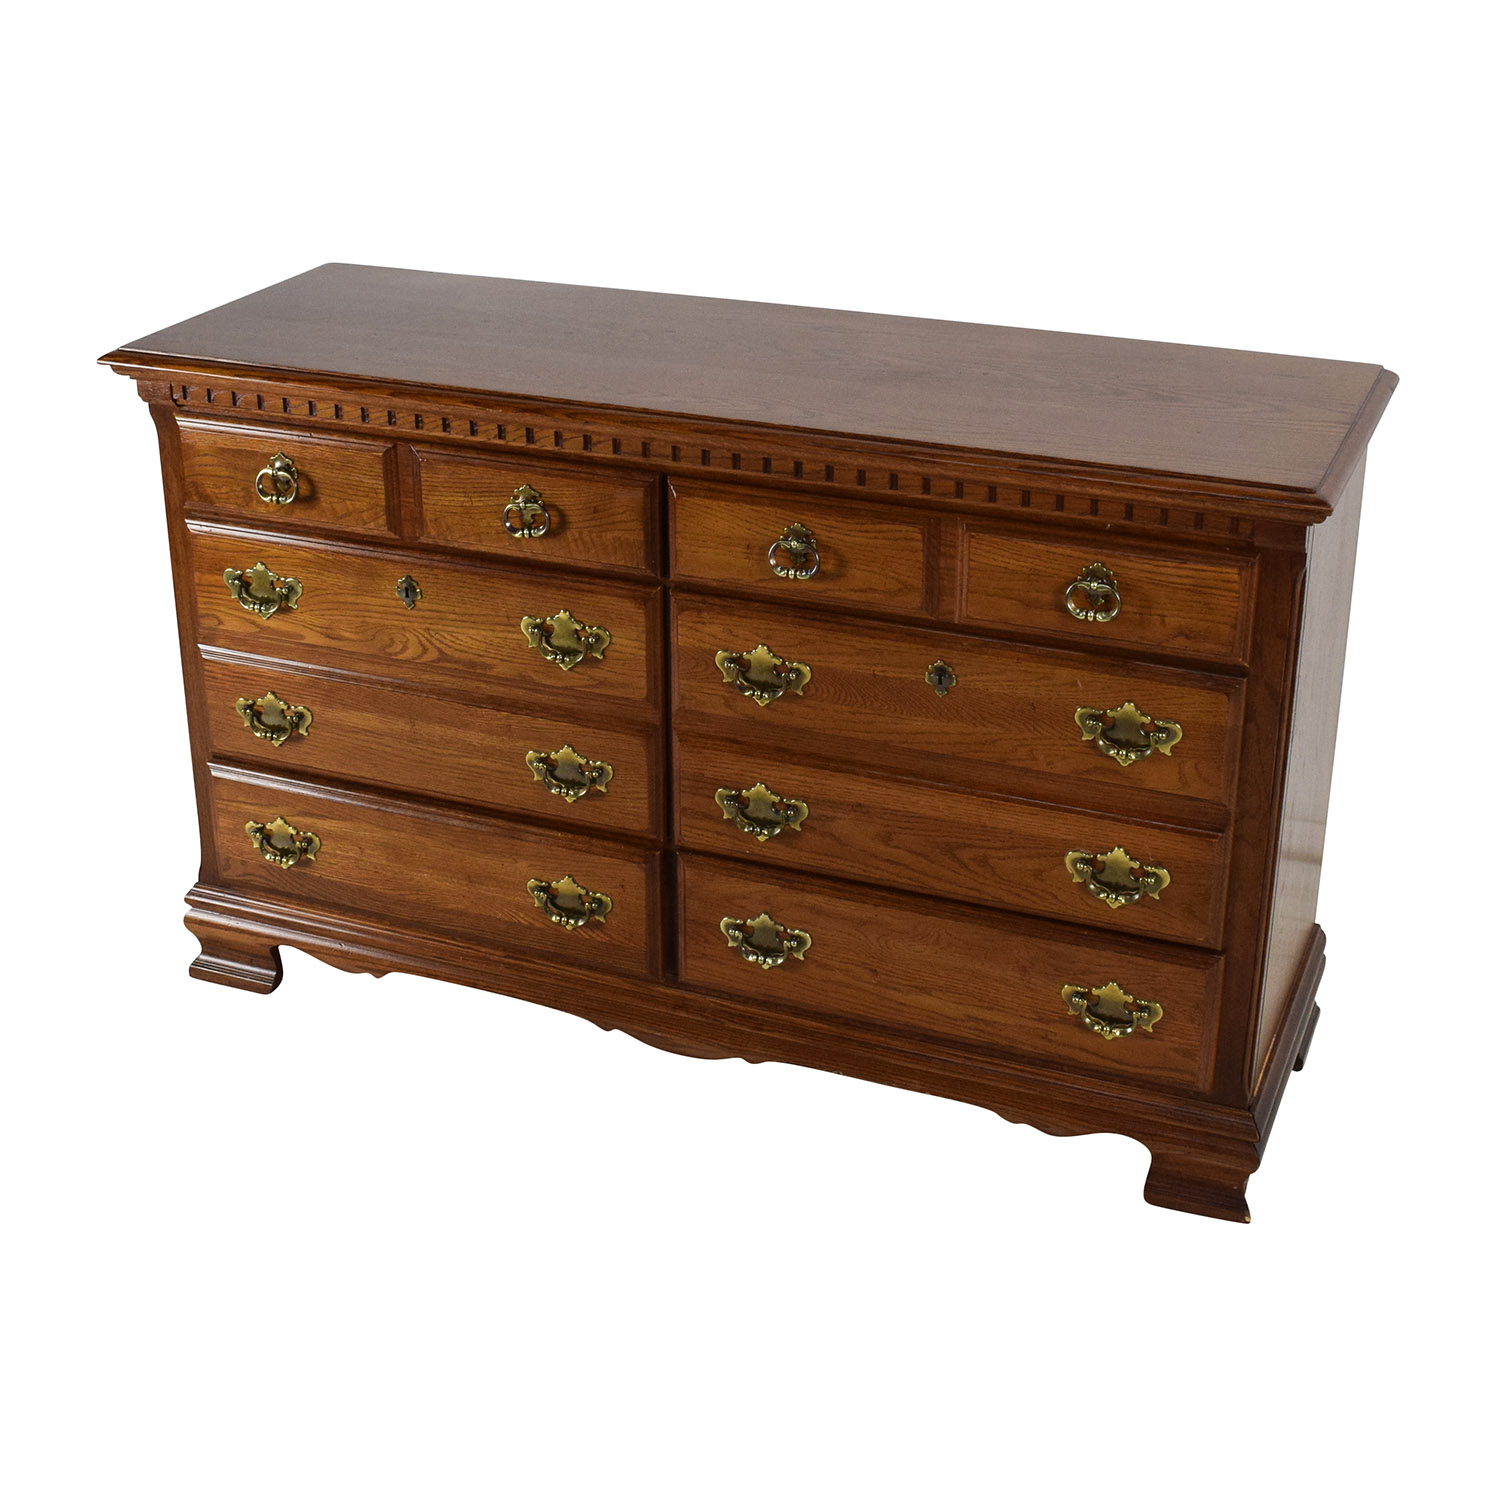 64 Off Kincaid Furniture Kincaid Furniture Solid Wood